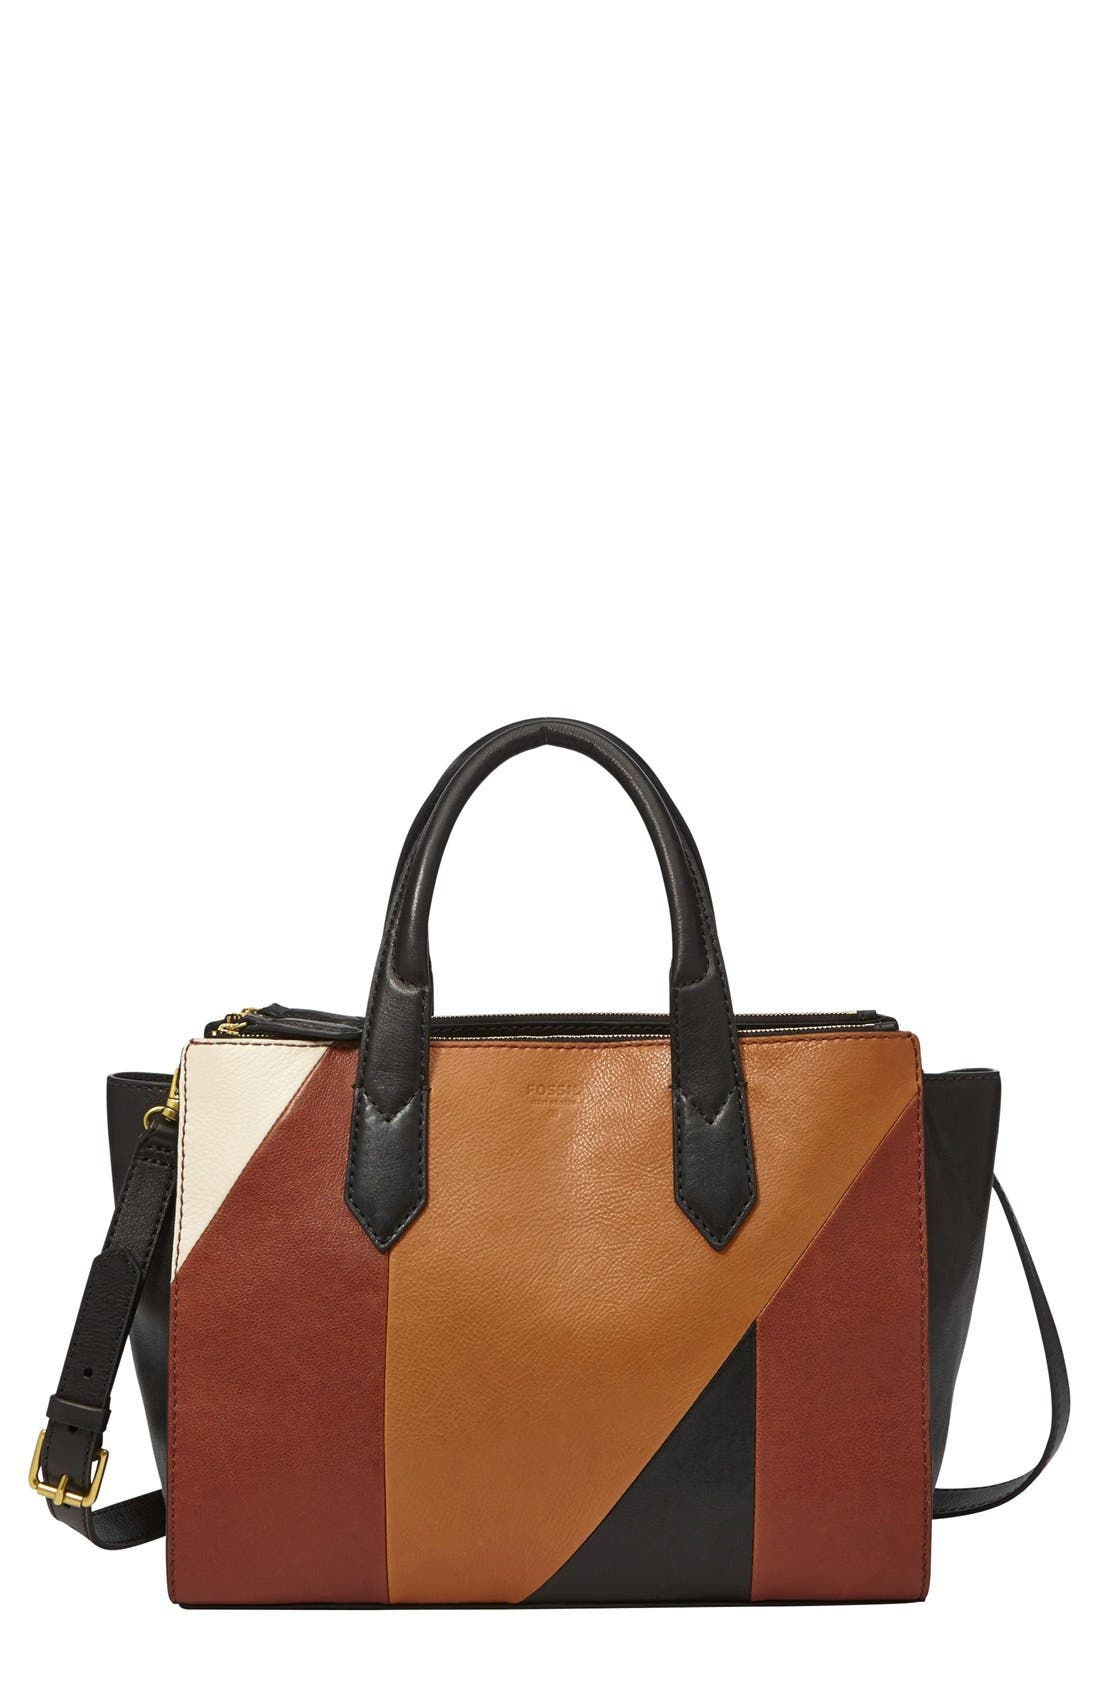 Main Image - Fossil 'Knox' Patchwork Leather Shopper